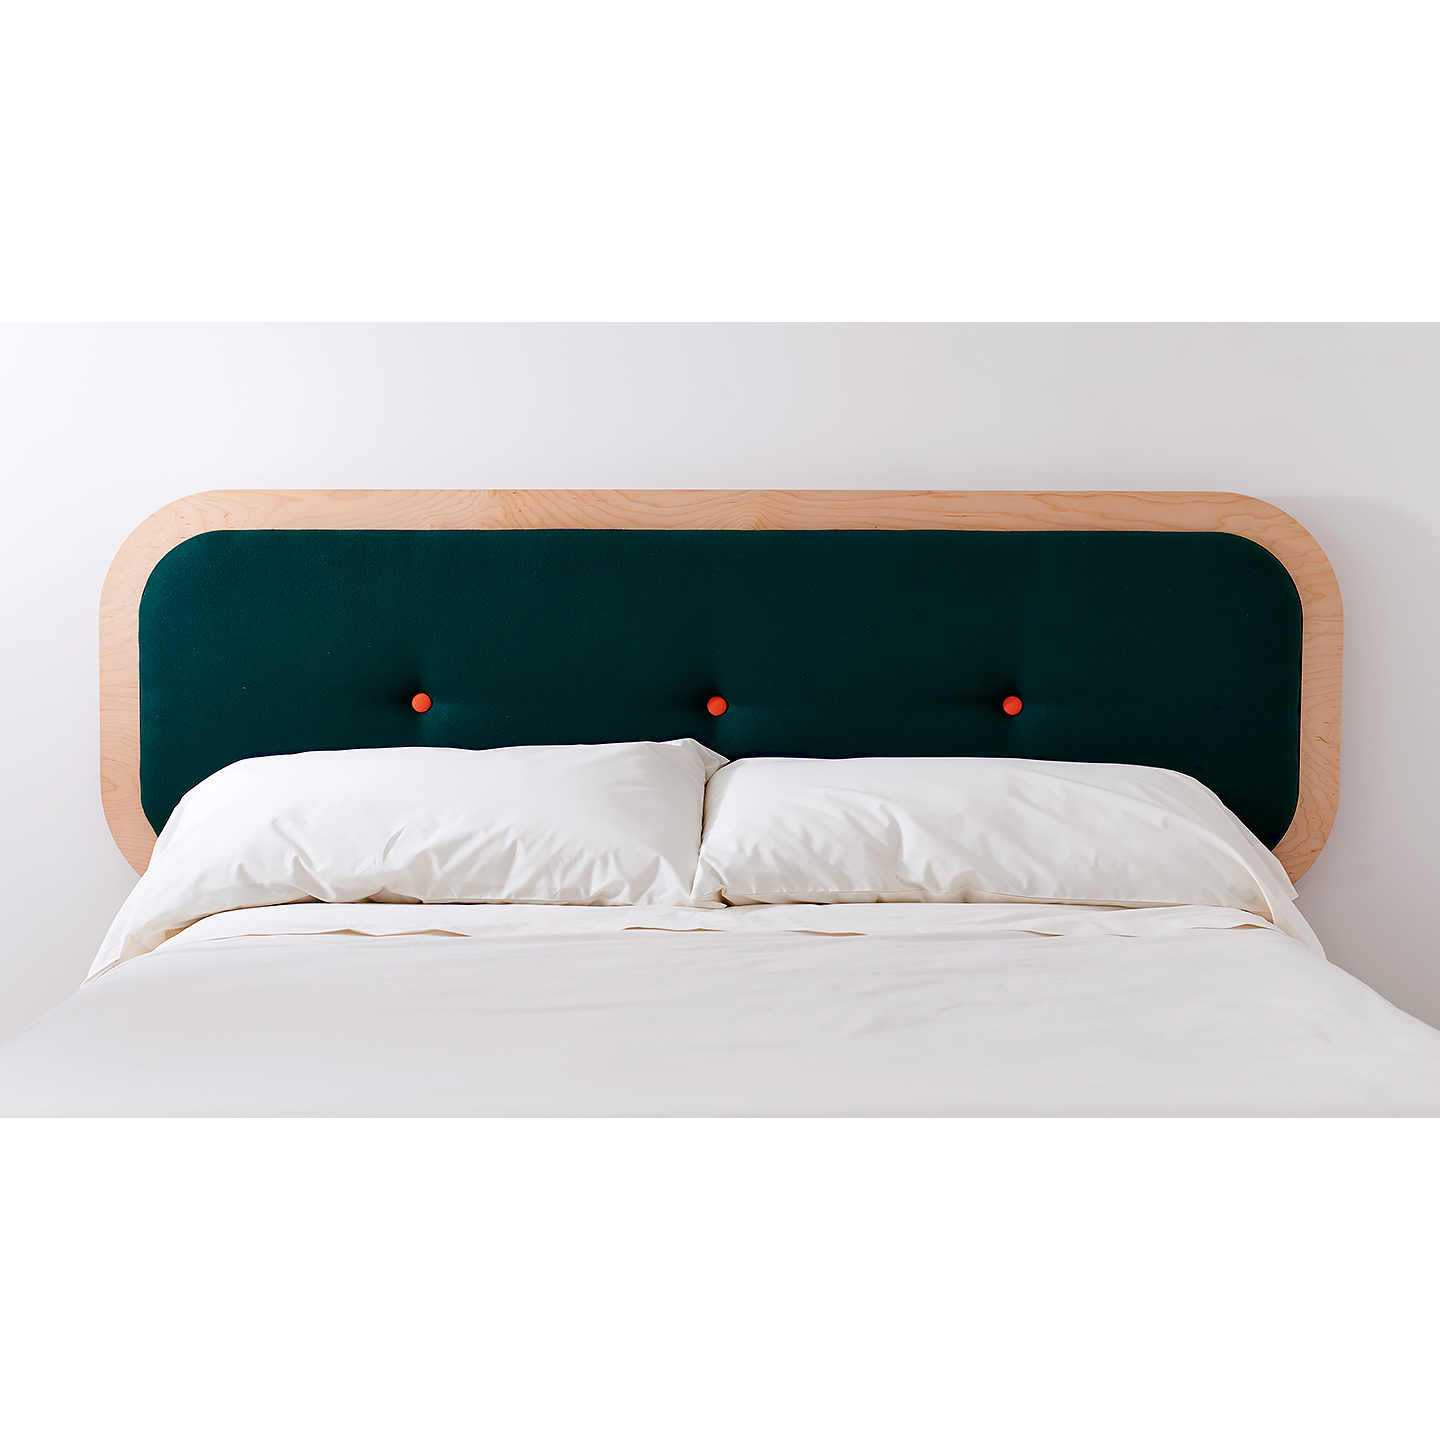 Headboard_Green_whtr_sq.jpg